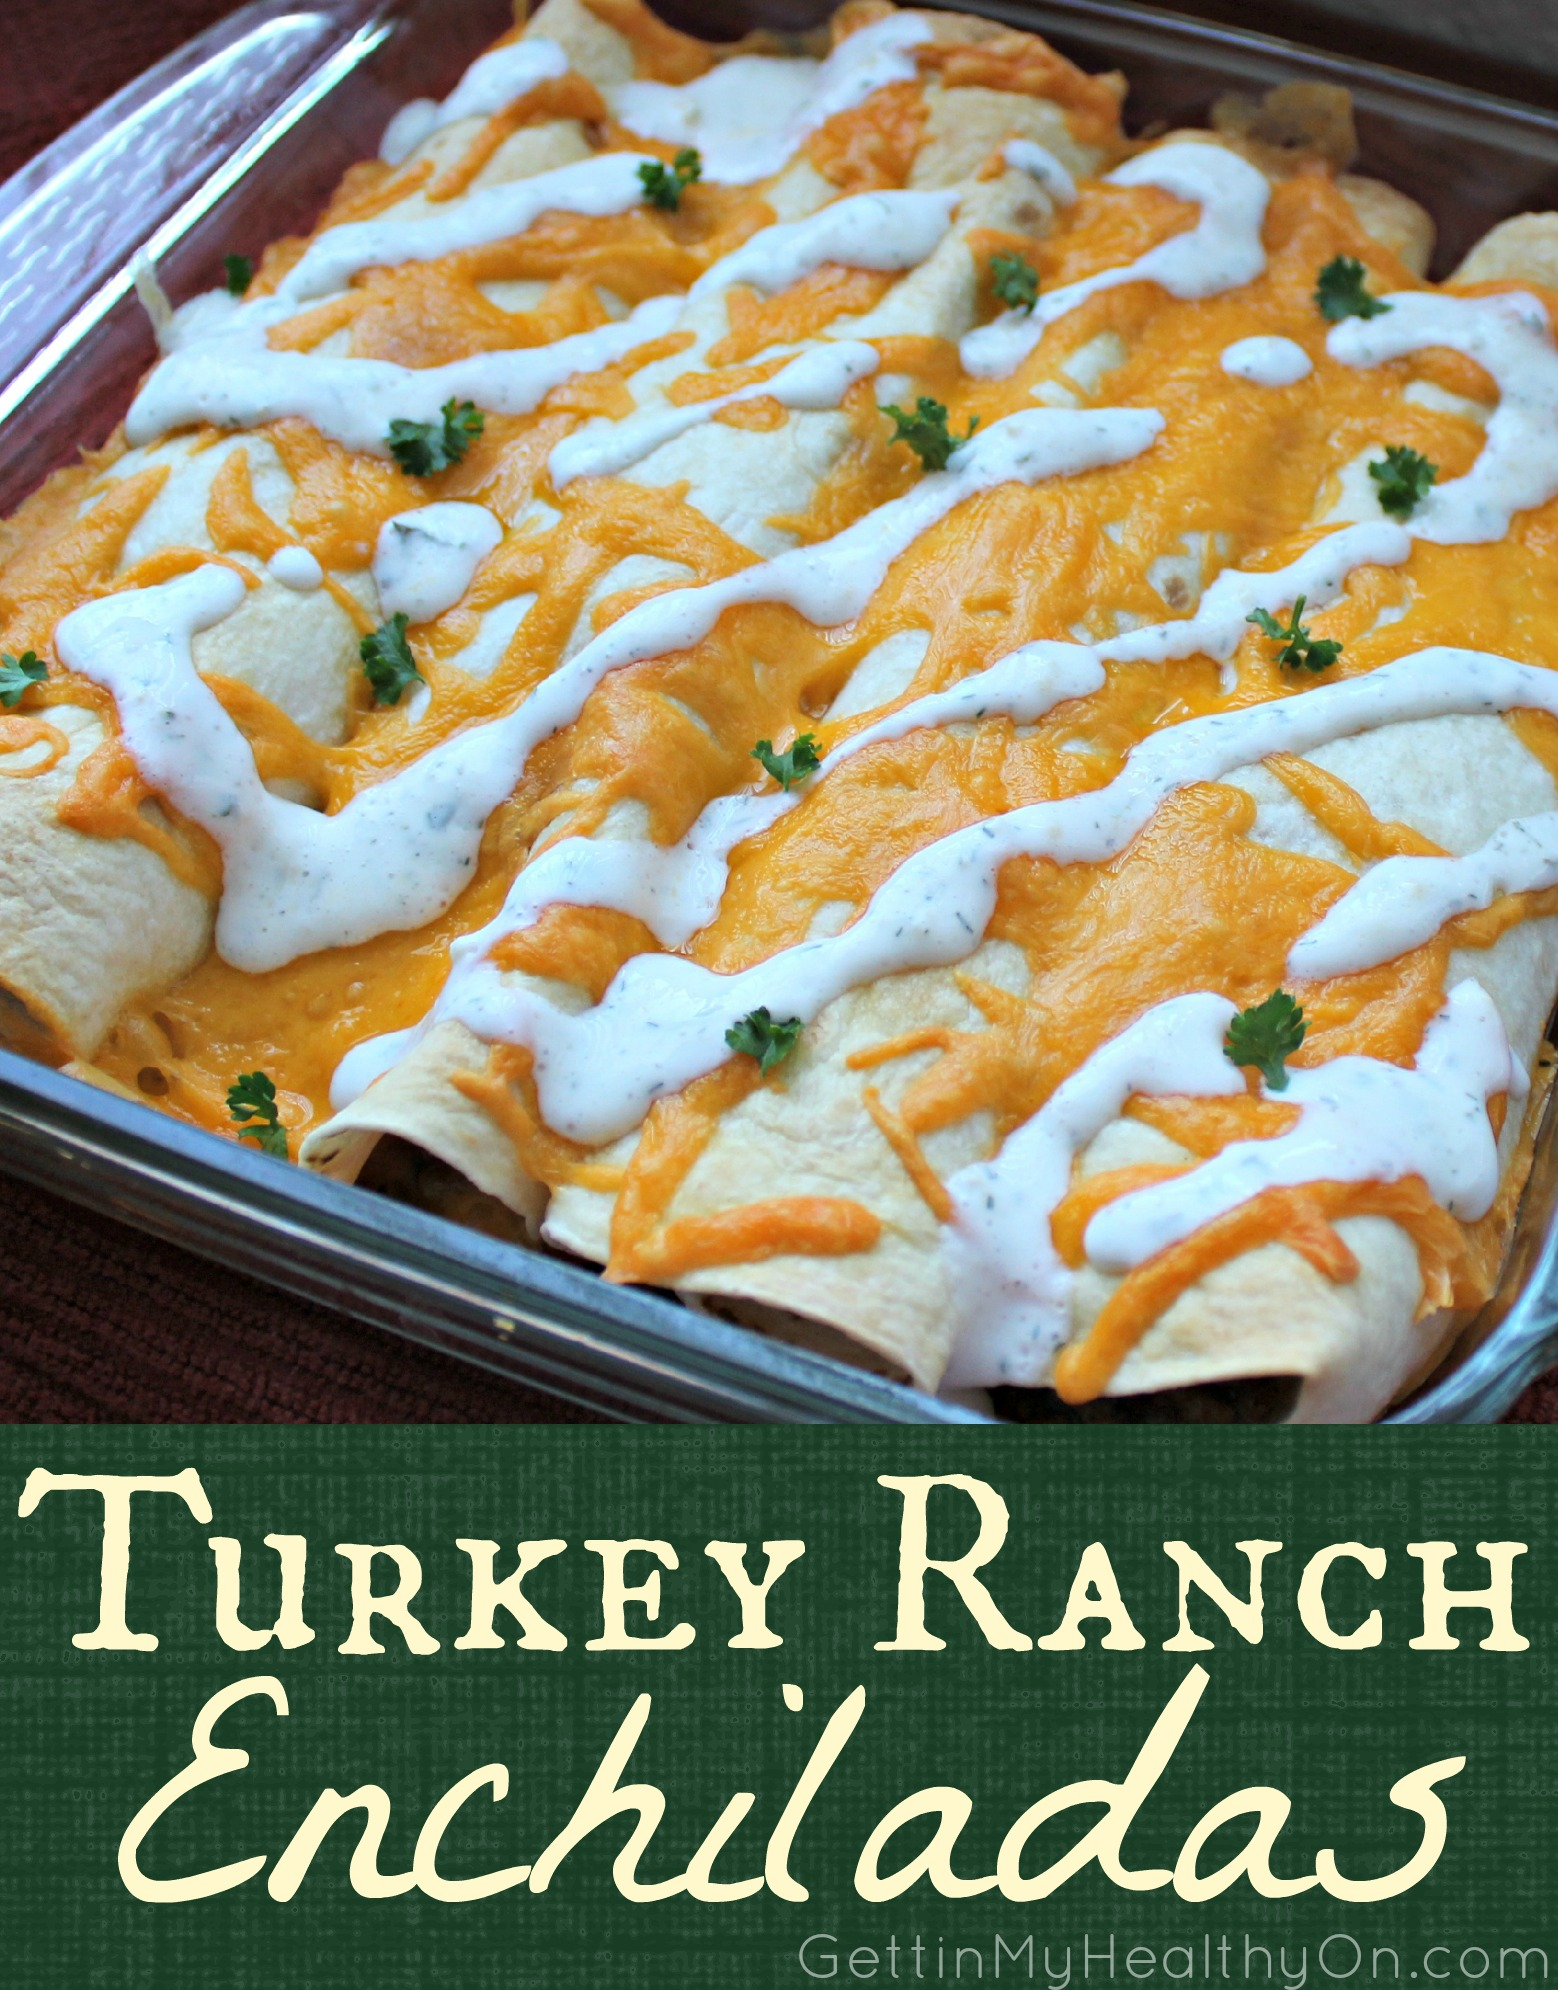 Turkey Ranch Enchiladas